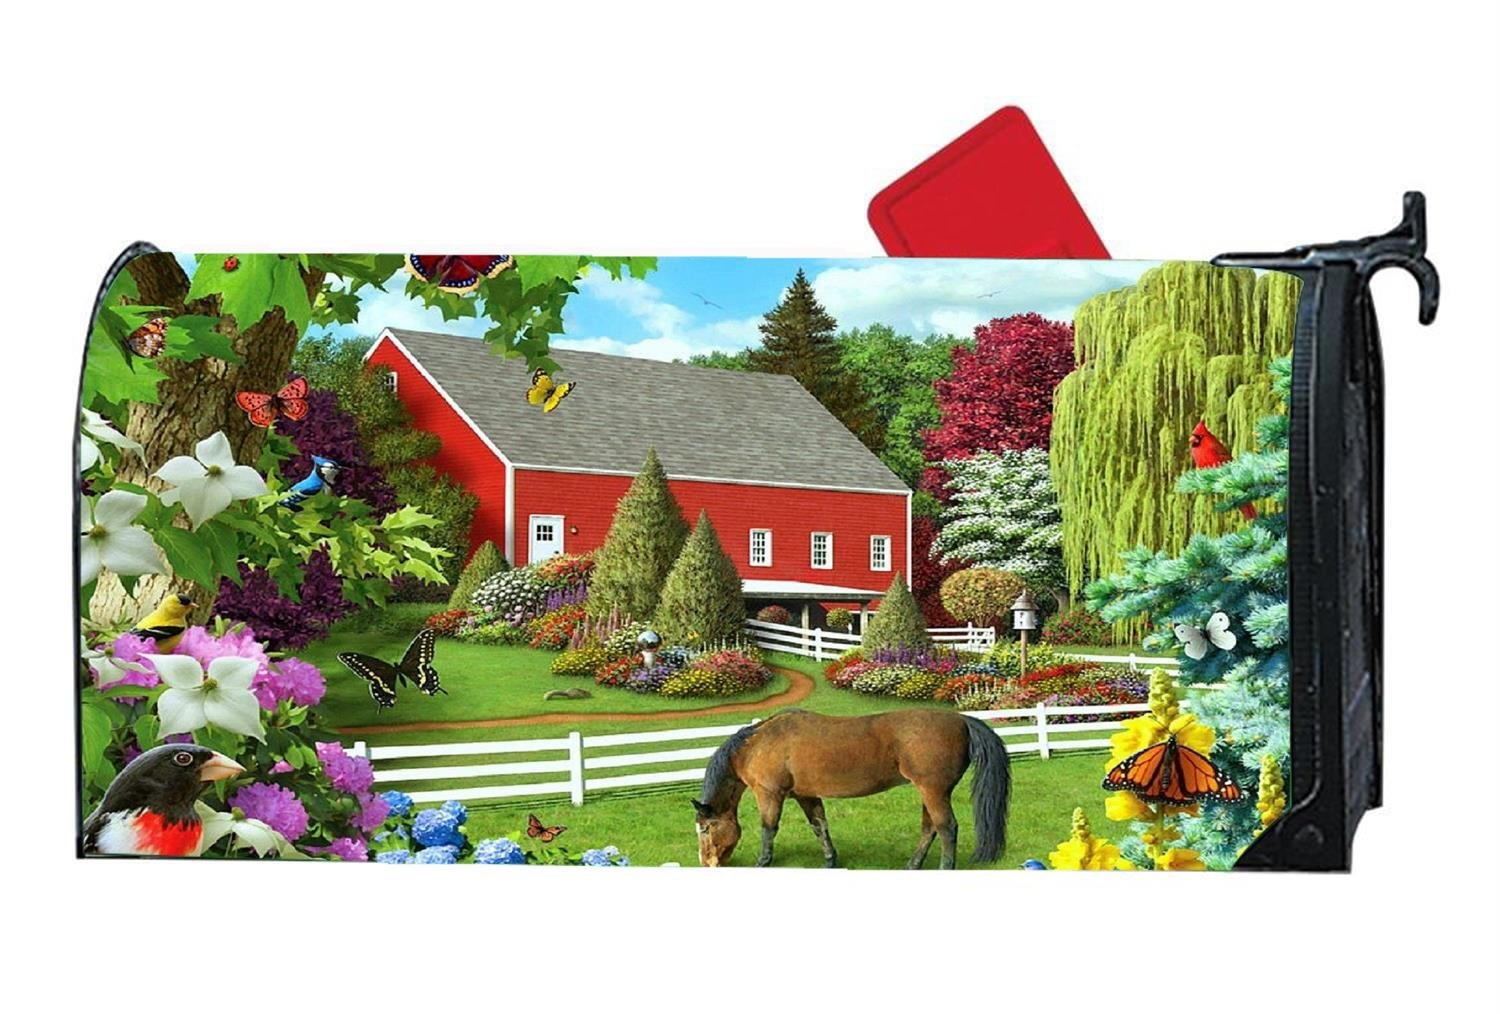 Customized Magnetic Mailbox Cover Home Garden MailBox Wraps Standard Vinyl - Flowers Outdoor Butterfly Horses Farm by Mailboxcoverfhiw